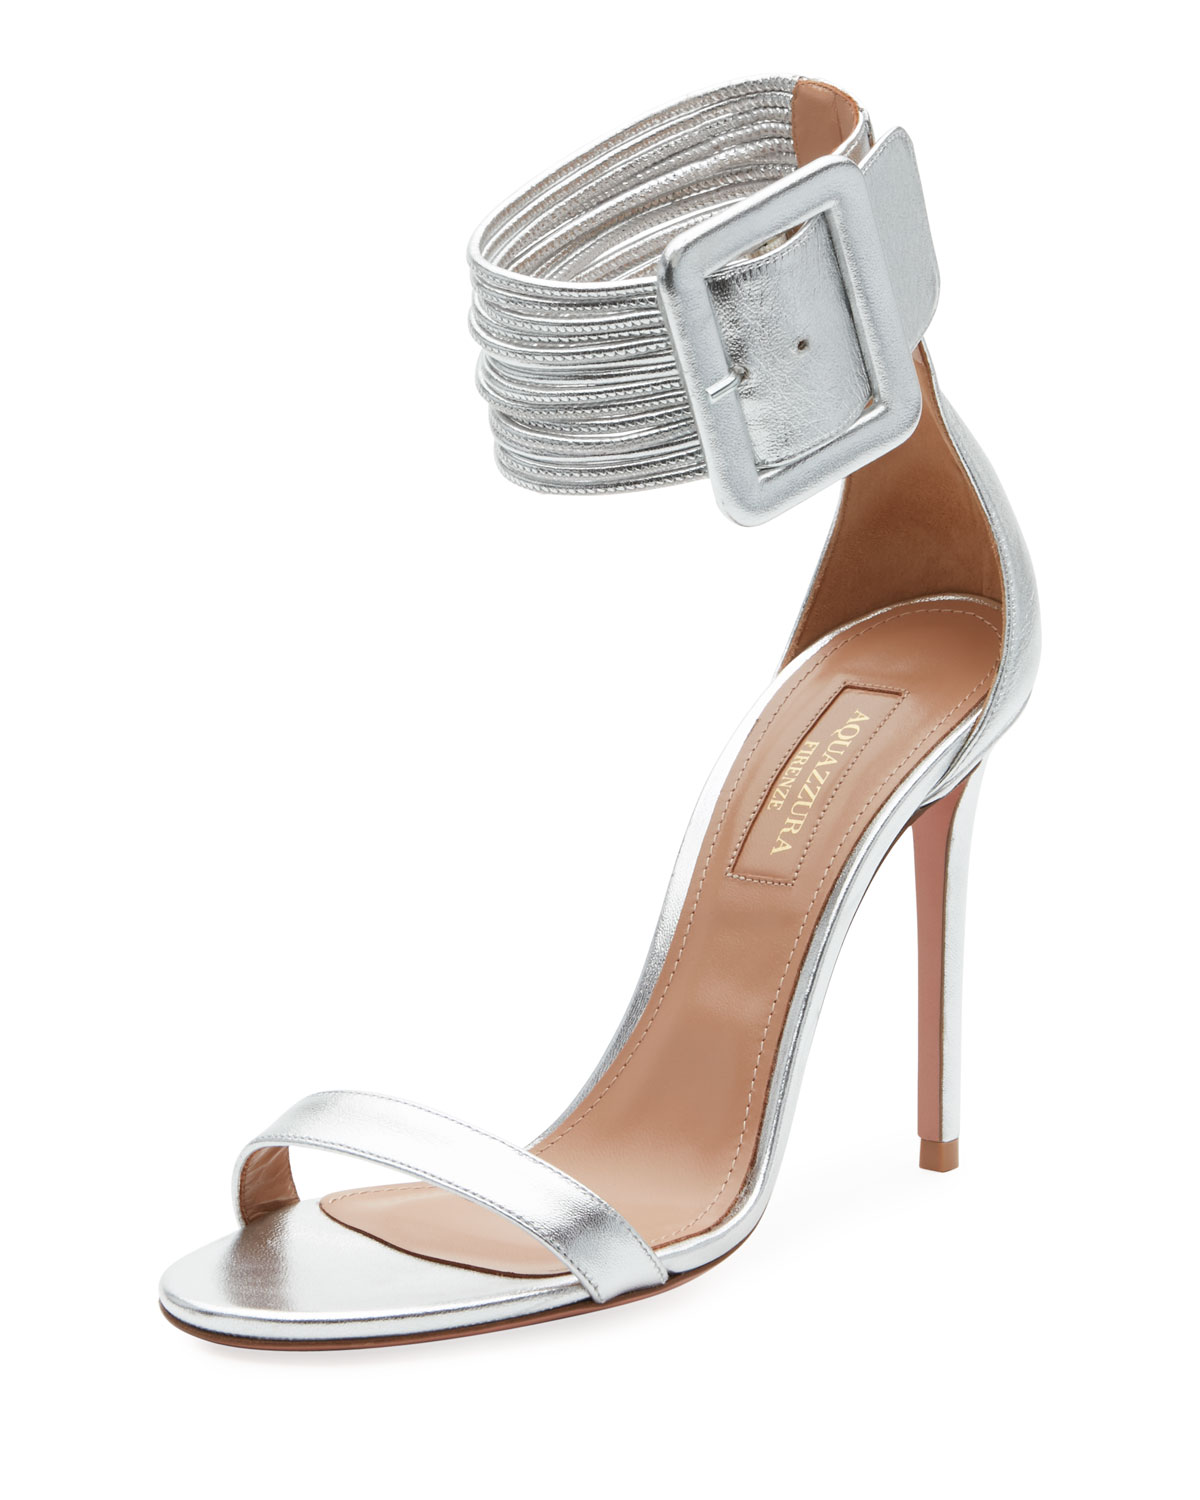 ASOS Online Shopping for the Latest Clothes Fashion Fashion ankle cuff sandals